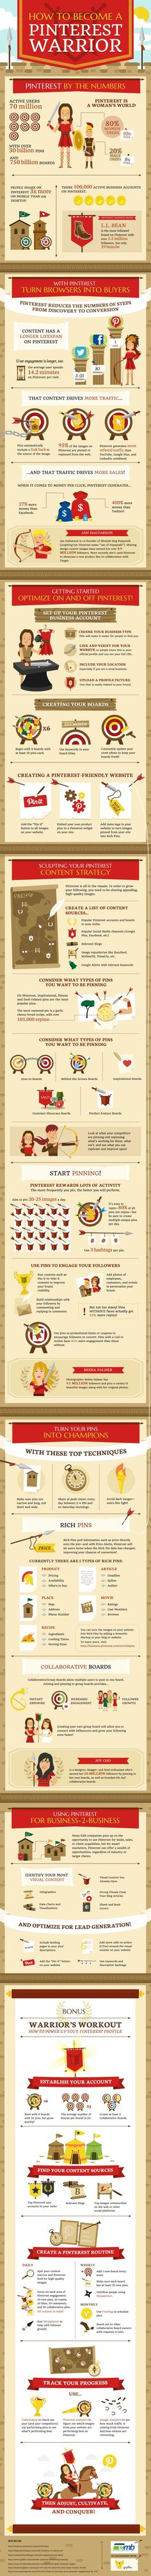 How To use Pinterest for Business : #SocialMedia #Marketing #Pinterest - #infographic